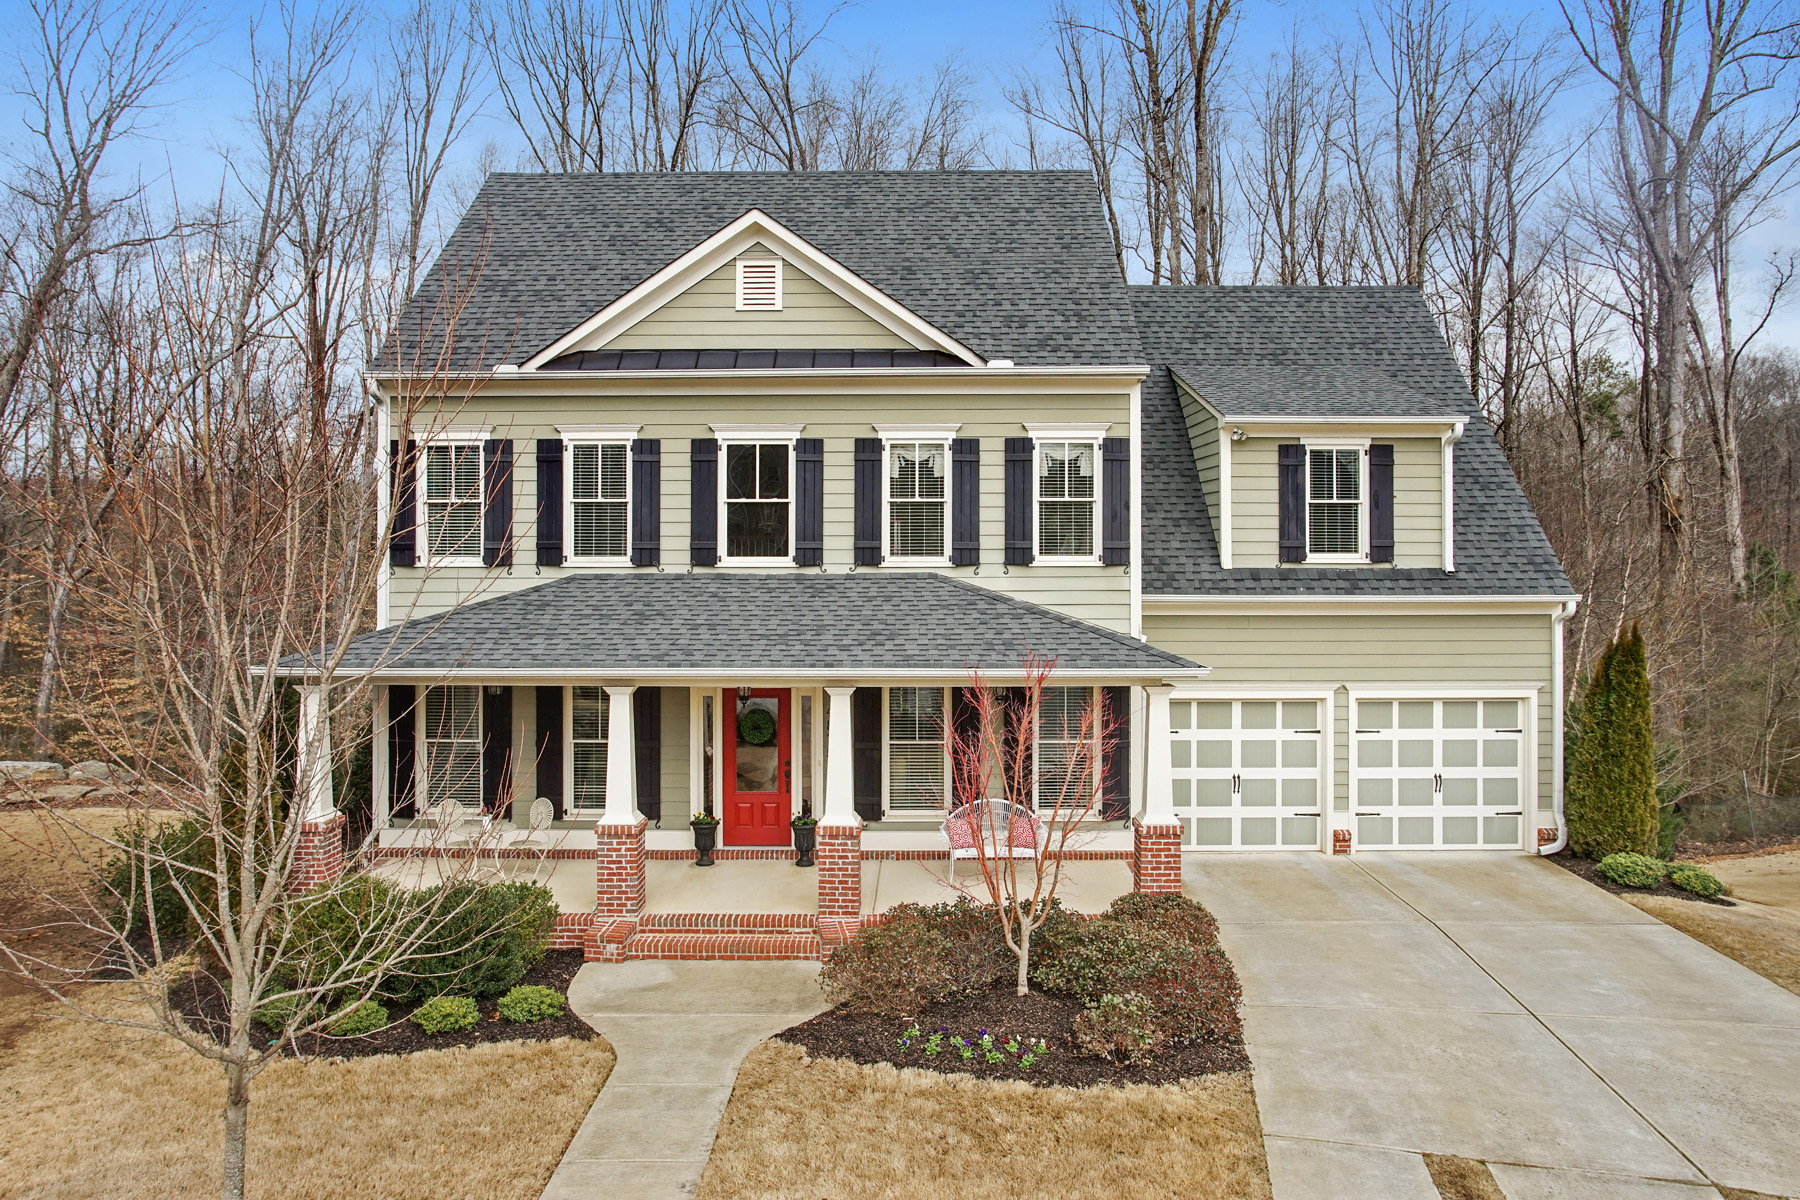 Single Family Home for Sale at Terrace Level Featured on HGTV's Elbow Room 4875 Westgate Drive Cumming, Georgia, 30040 United States